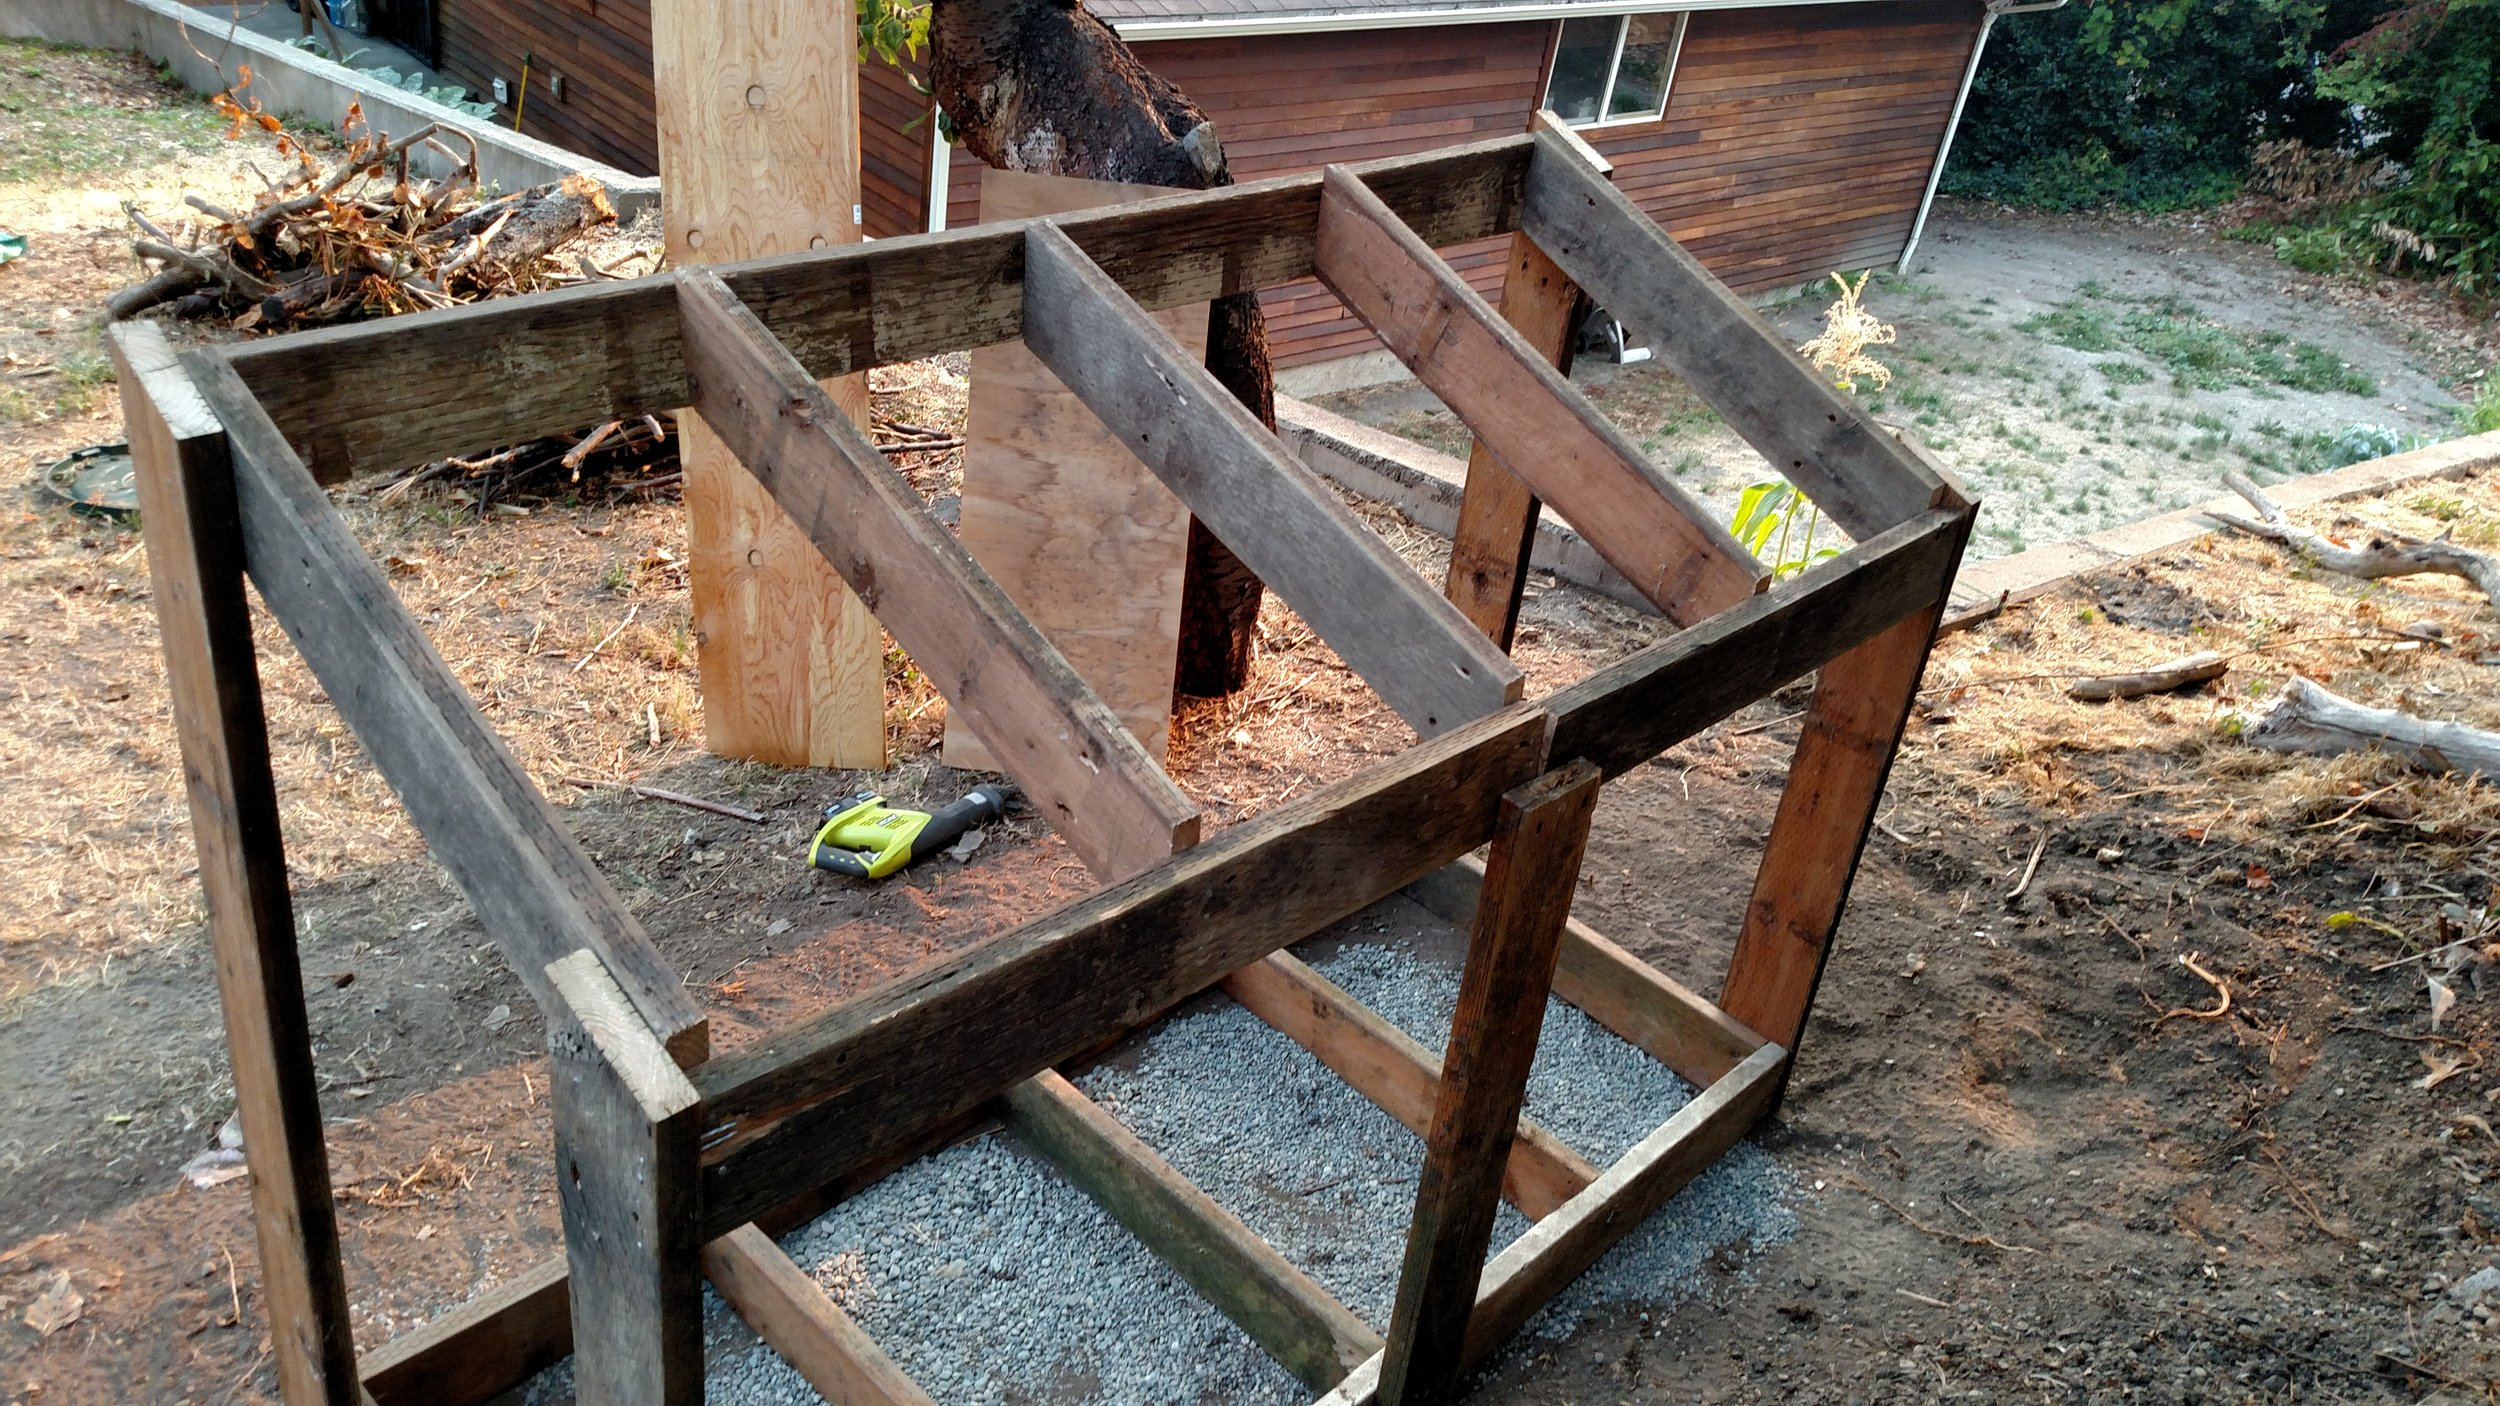 I followed my dads example of building when I used old pieces of my deck to frame out a woodshed.